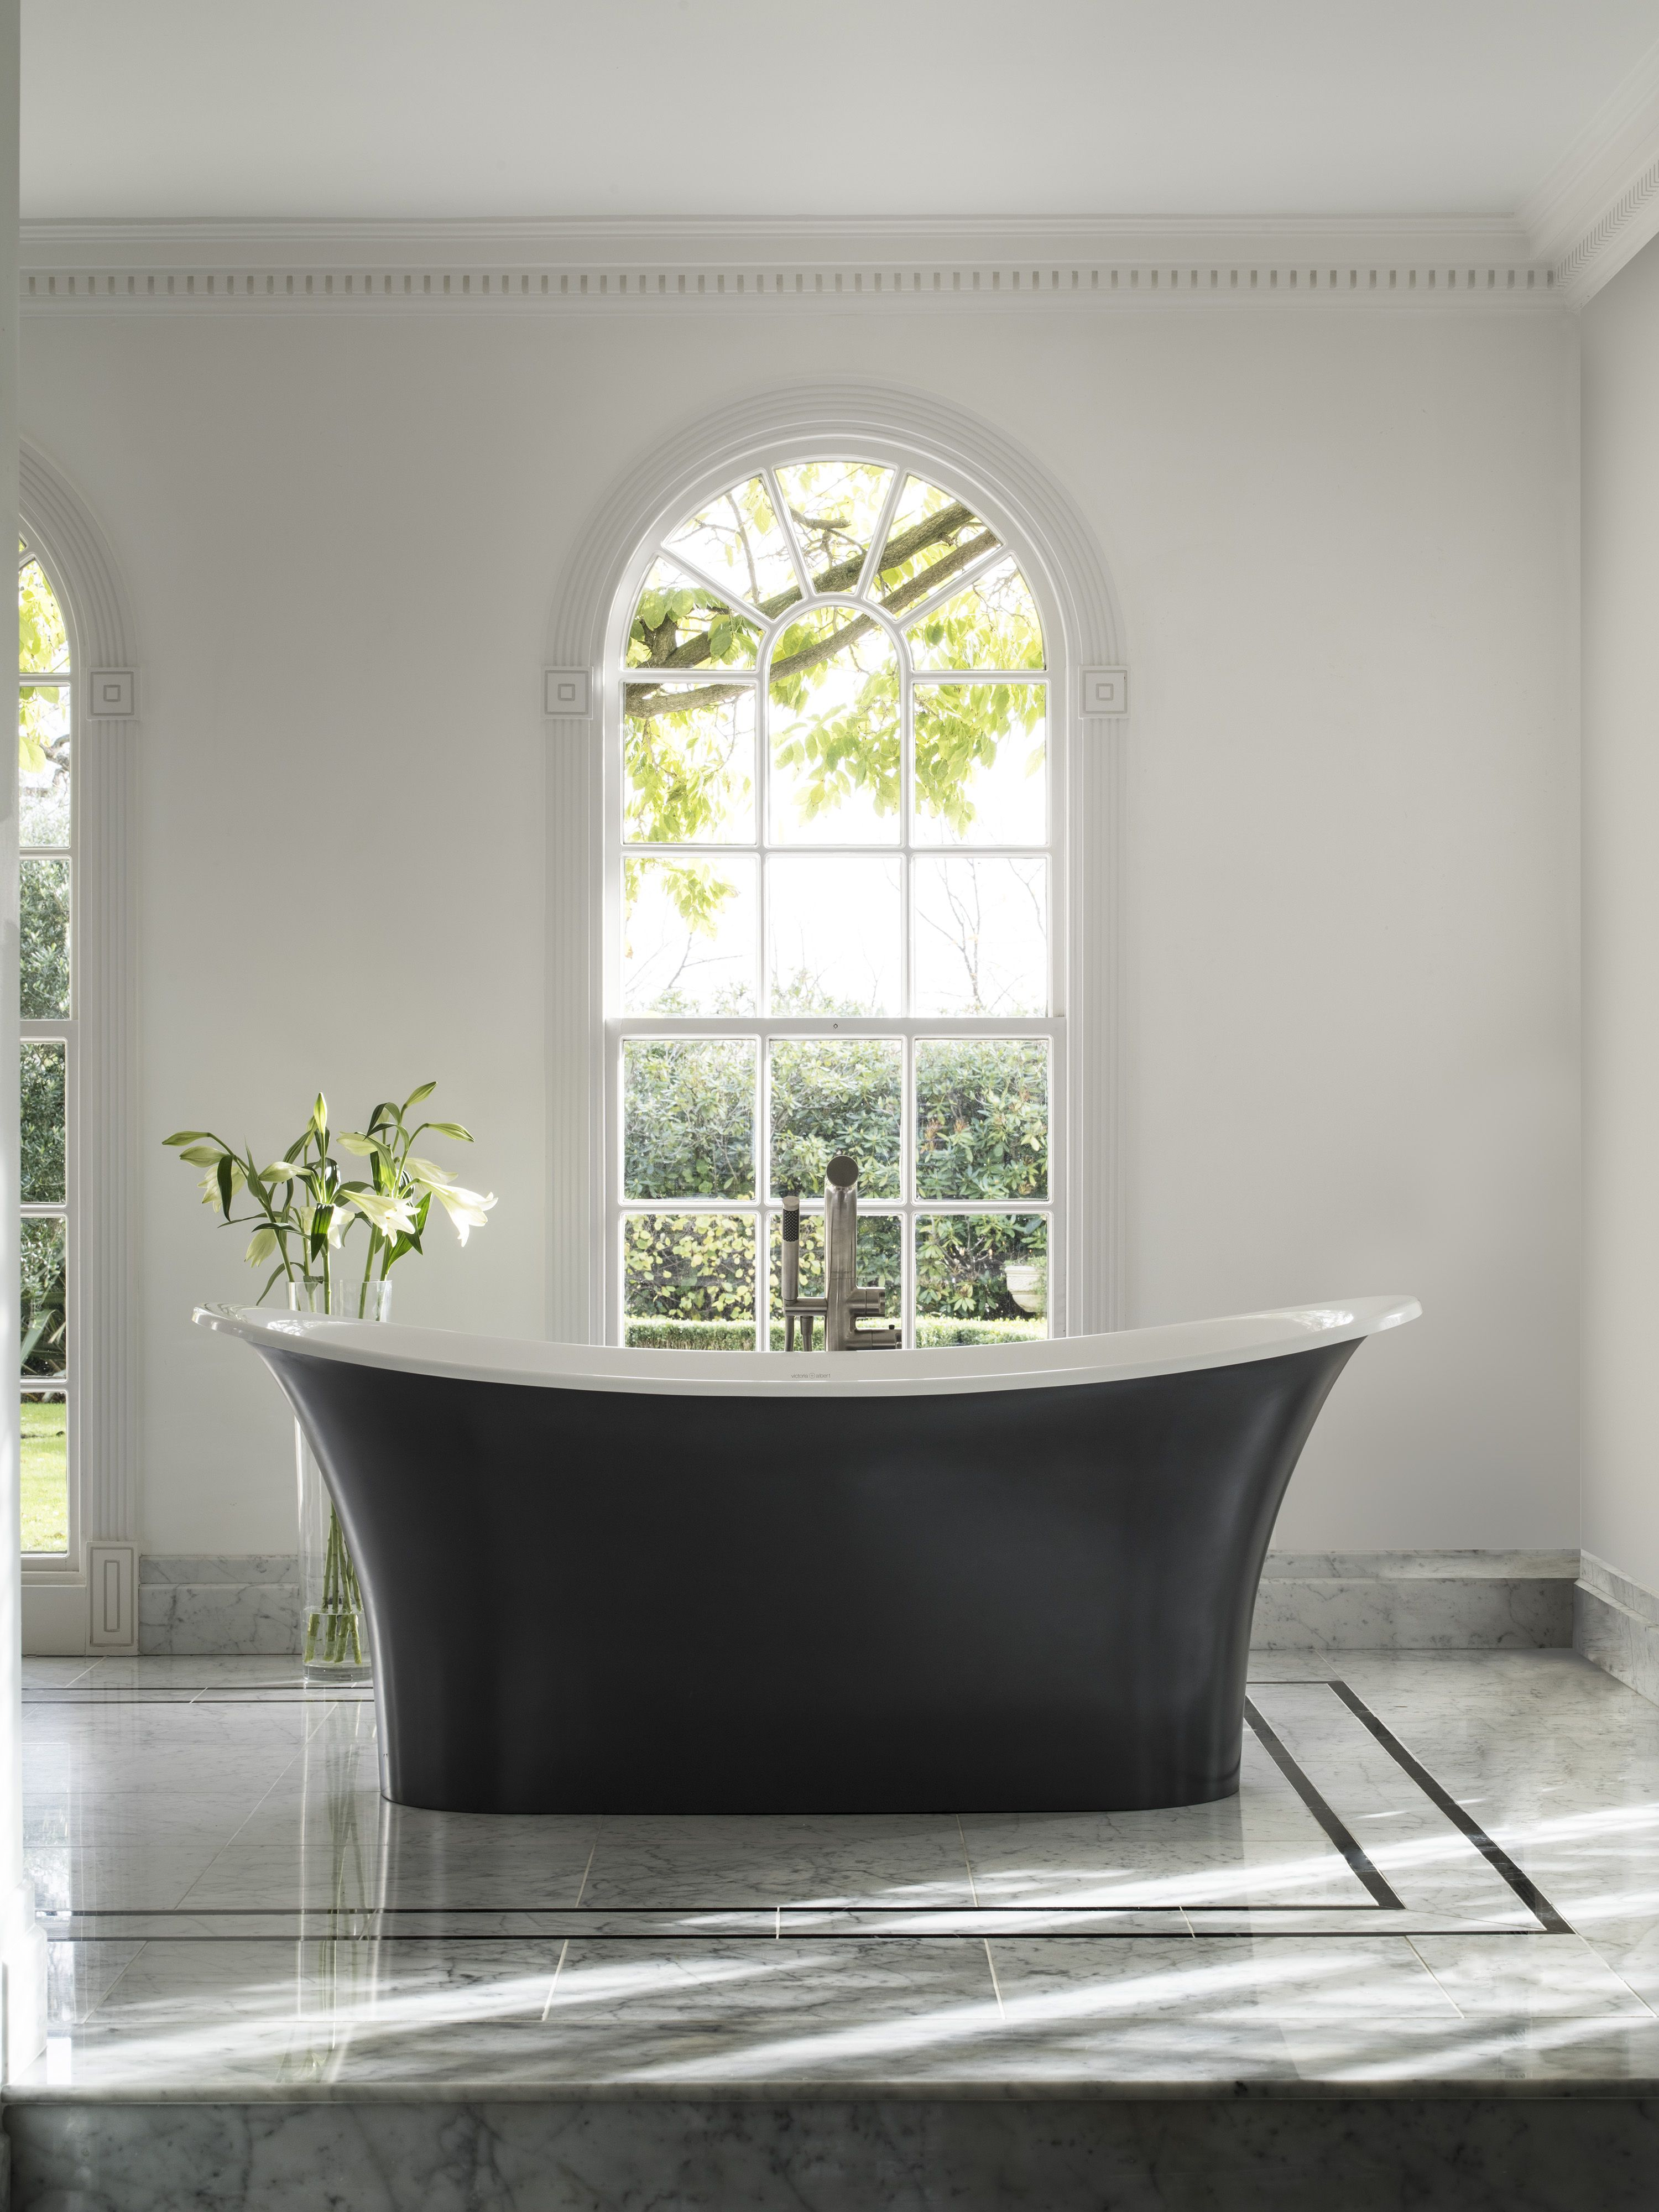 All Our QUARRYCAST Baths U0026 Basins Are Now Available In 7 External Colour  Finishes Including Anthracite